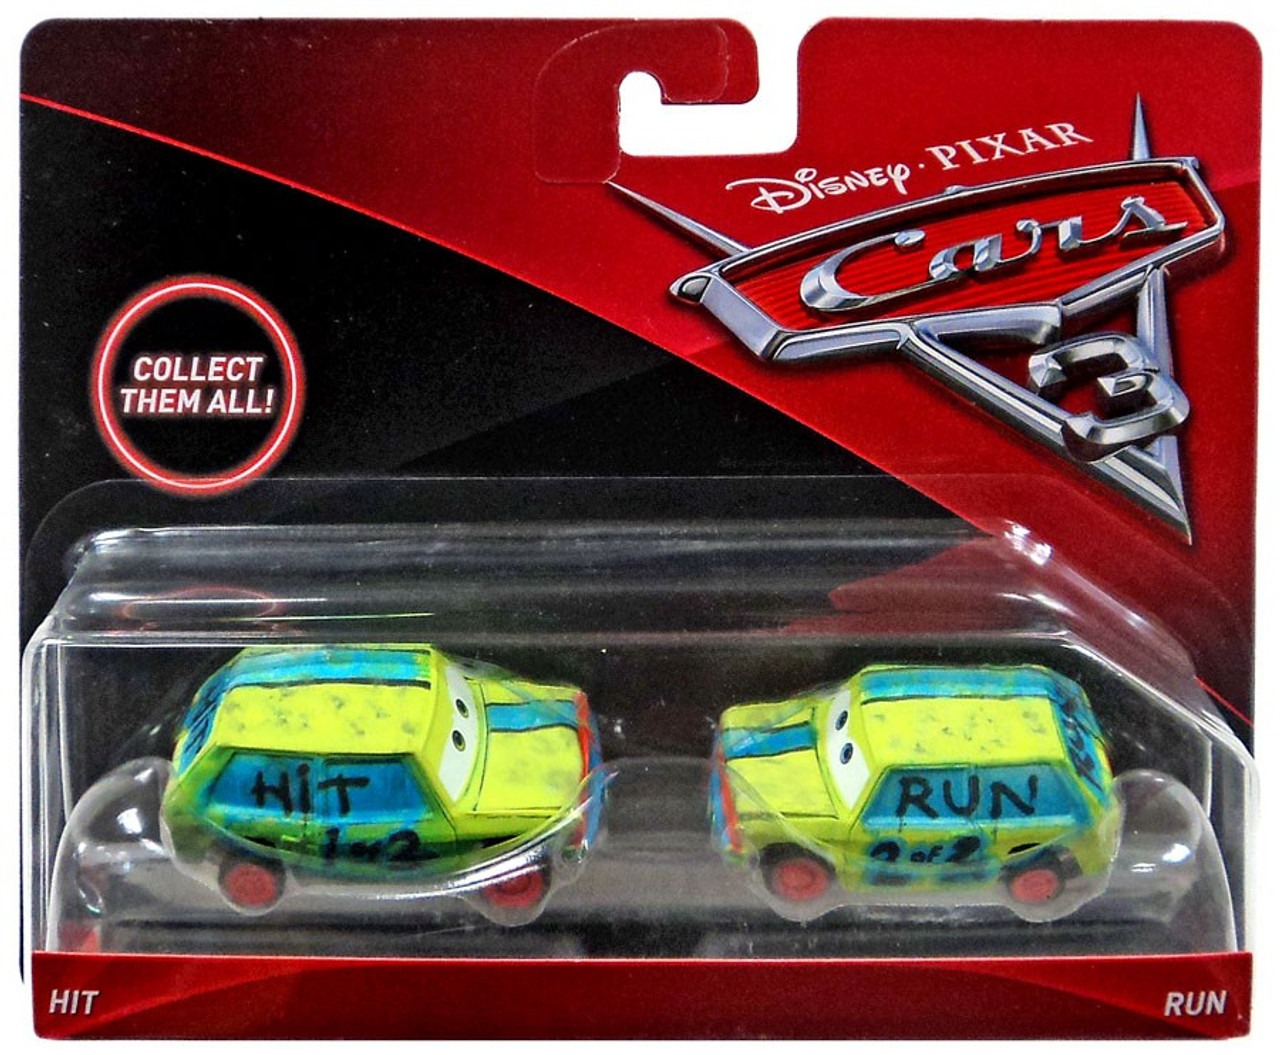 Disney Cars Cars 3 Hit Run 155 Diecast 2-Pack Mattel Toys - ToyWiz